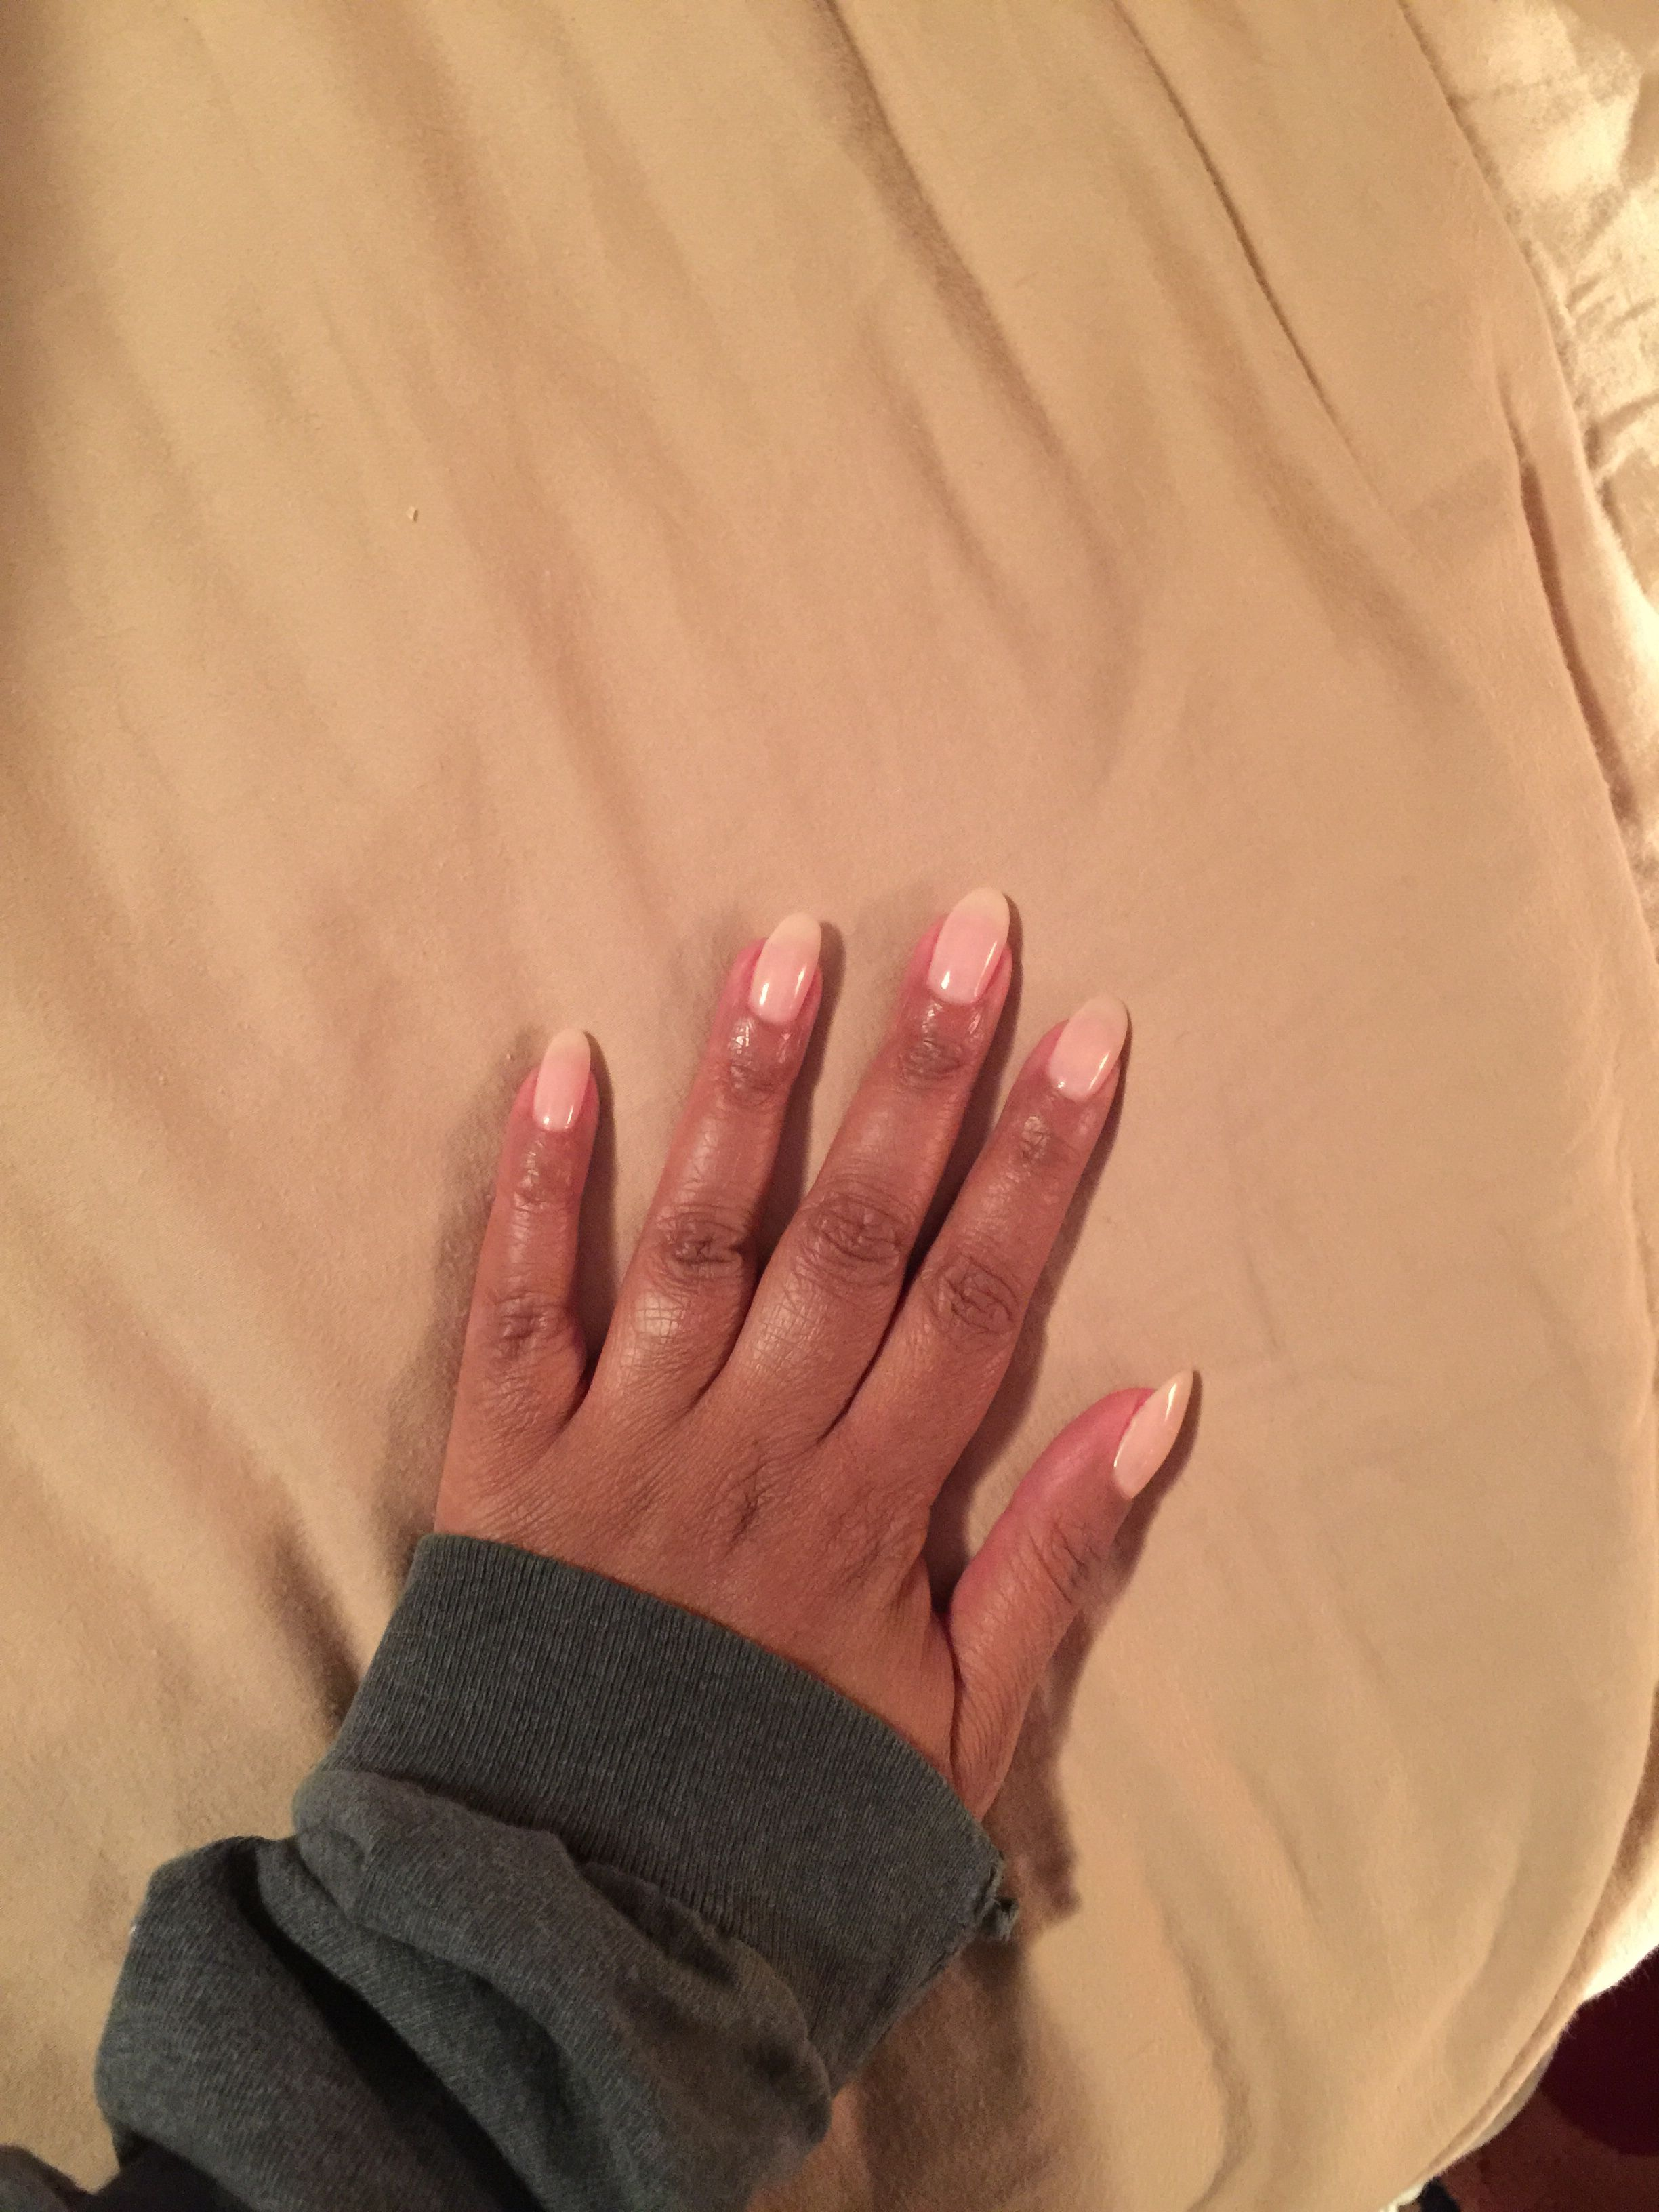 European liquid gel nails from Nail Junkie in Chicago. Very natural ...